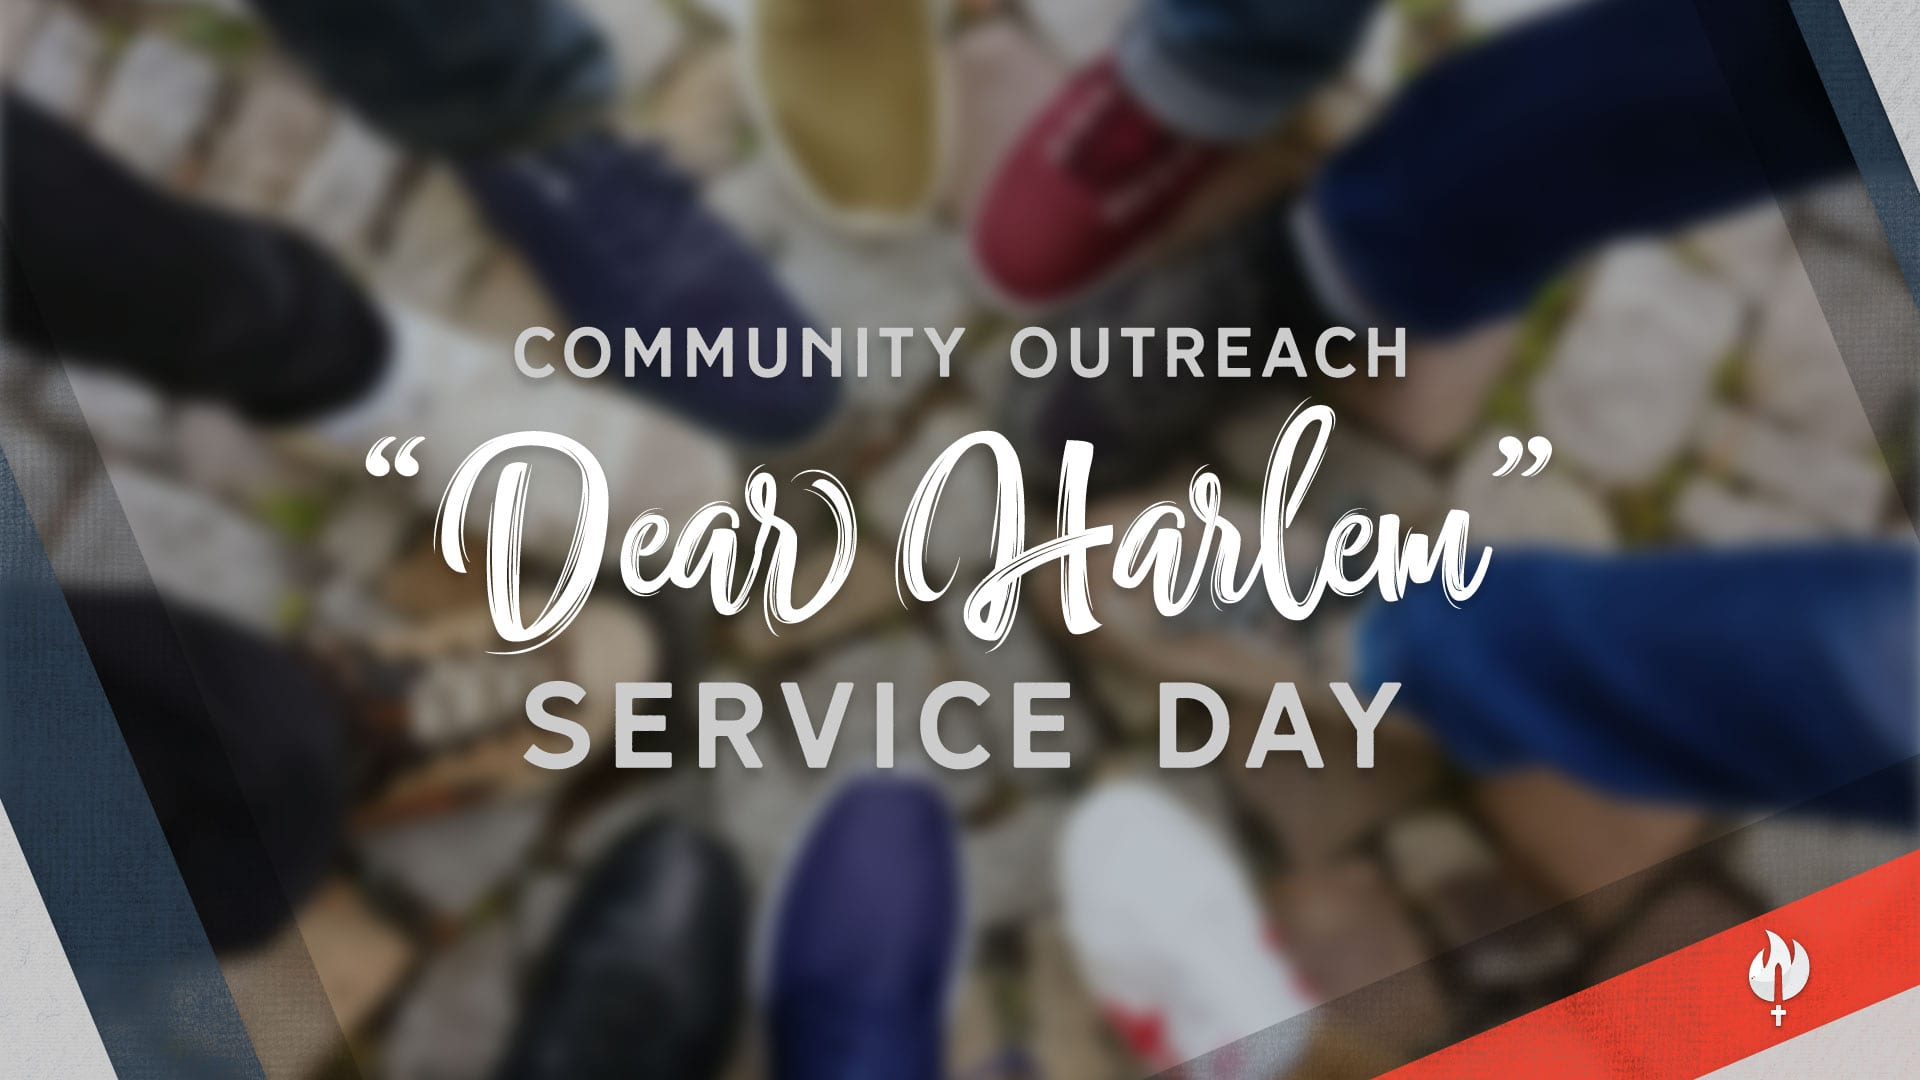 Dear Harlem Service Day at MyGeneration Church